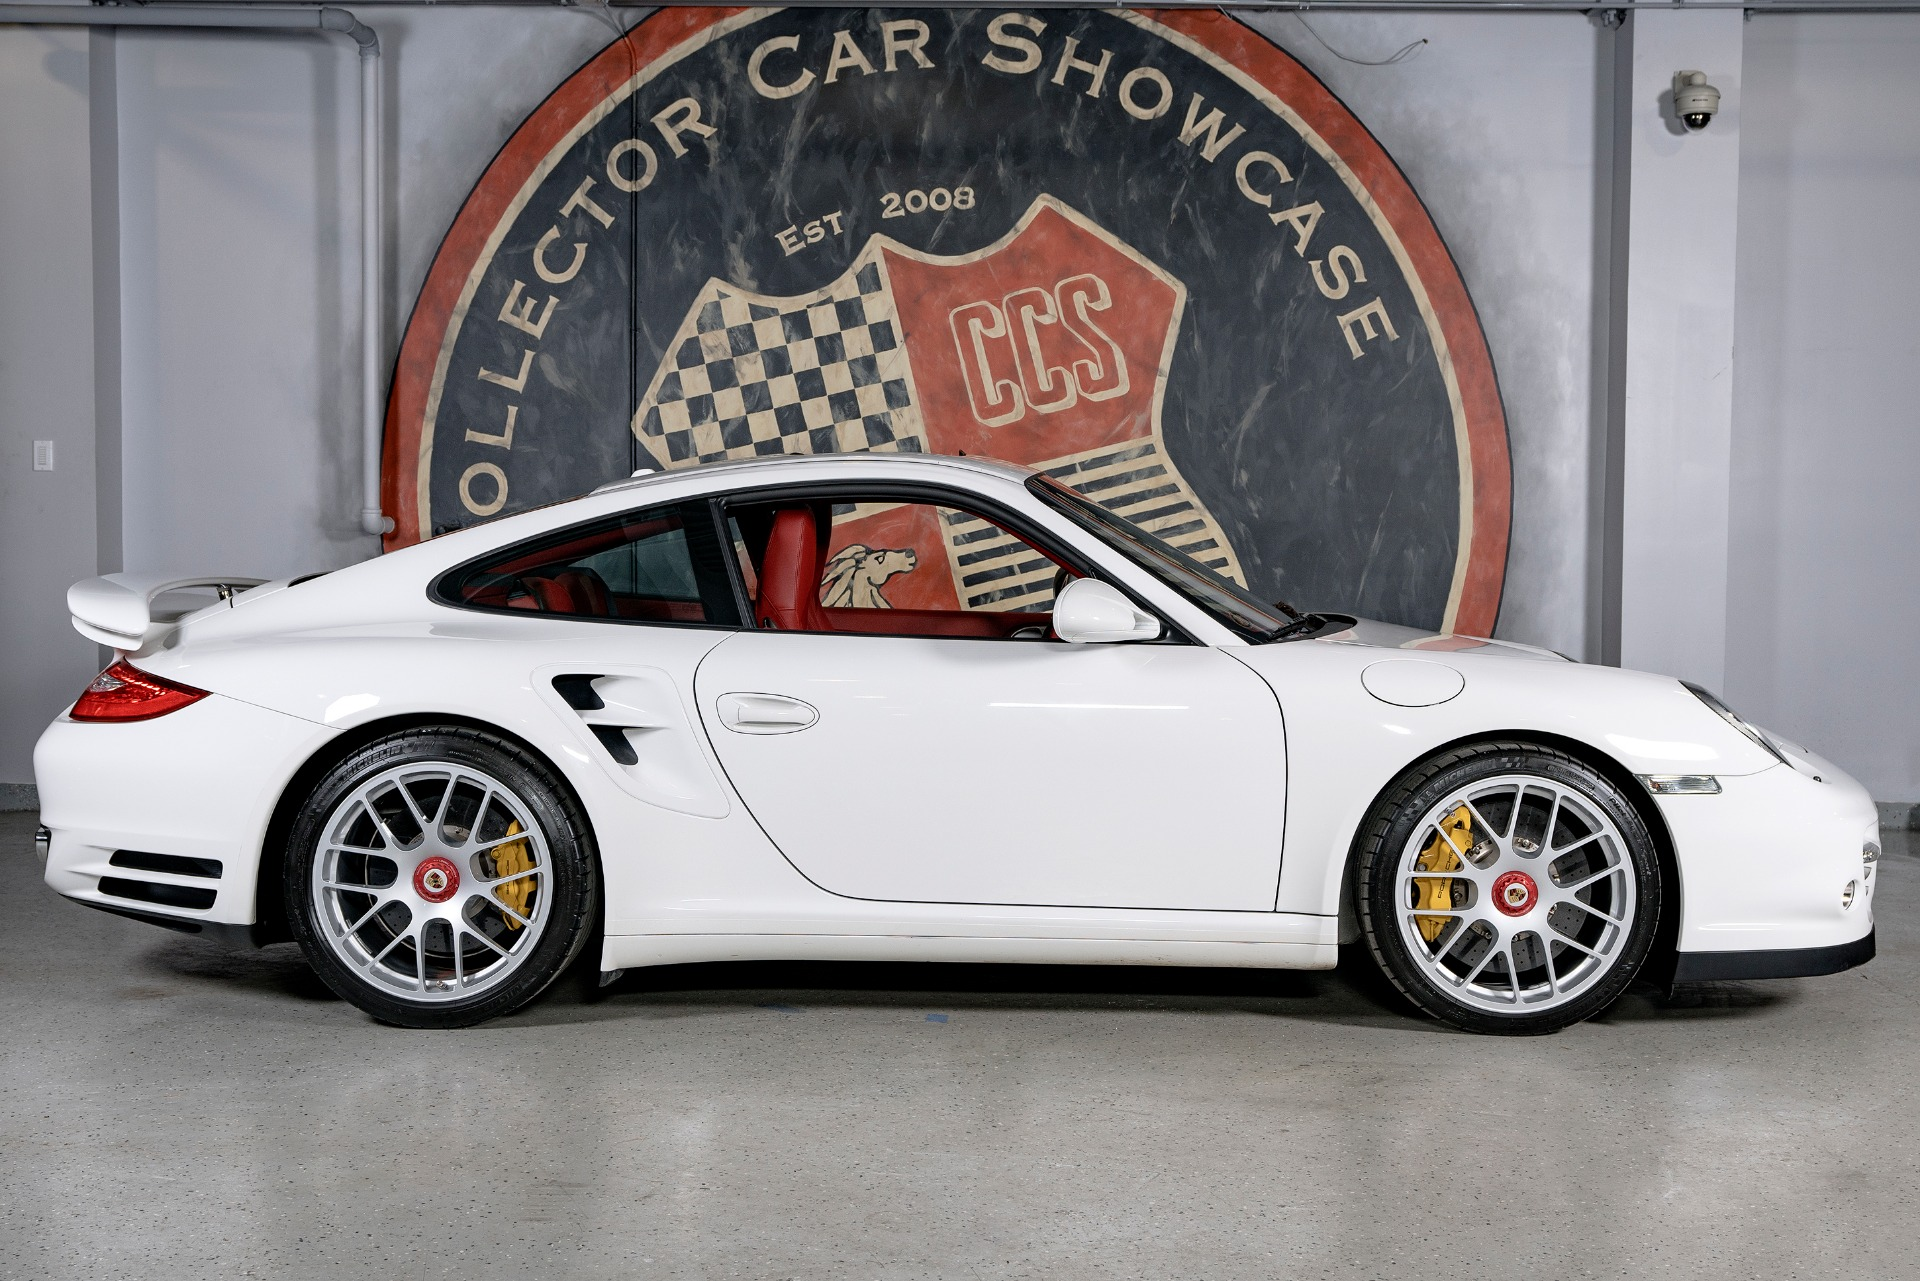 2011 porsche 911 turbo s stock 1338 for sale near oyster bay ny ny porsche dealer. Black Bedroom Furniture Sets. Home Design Ideas